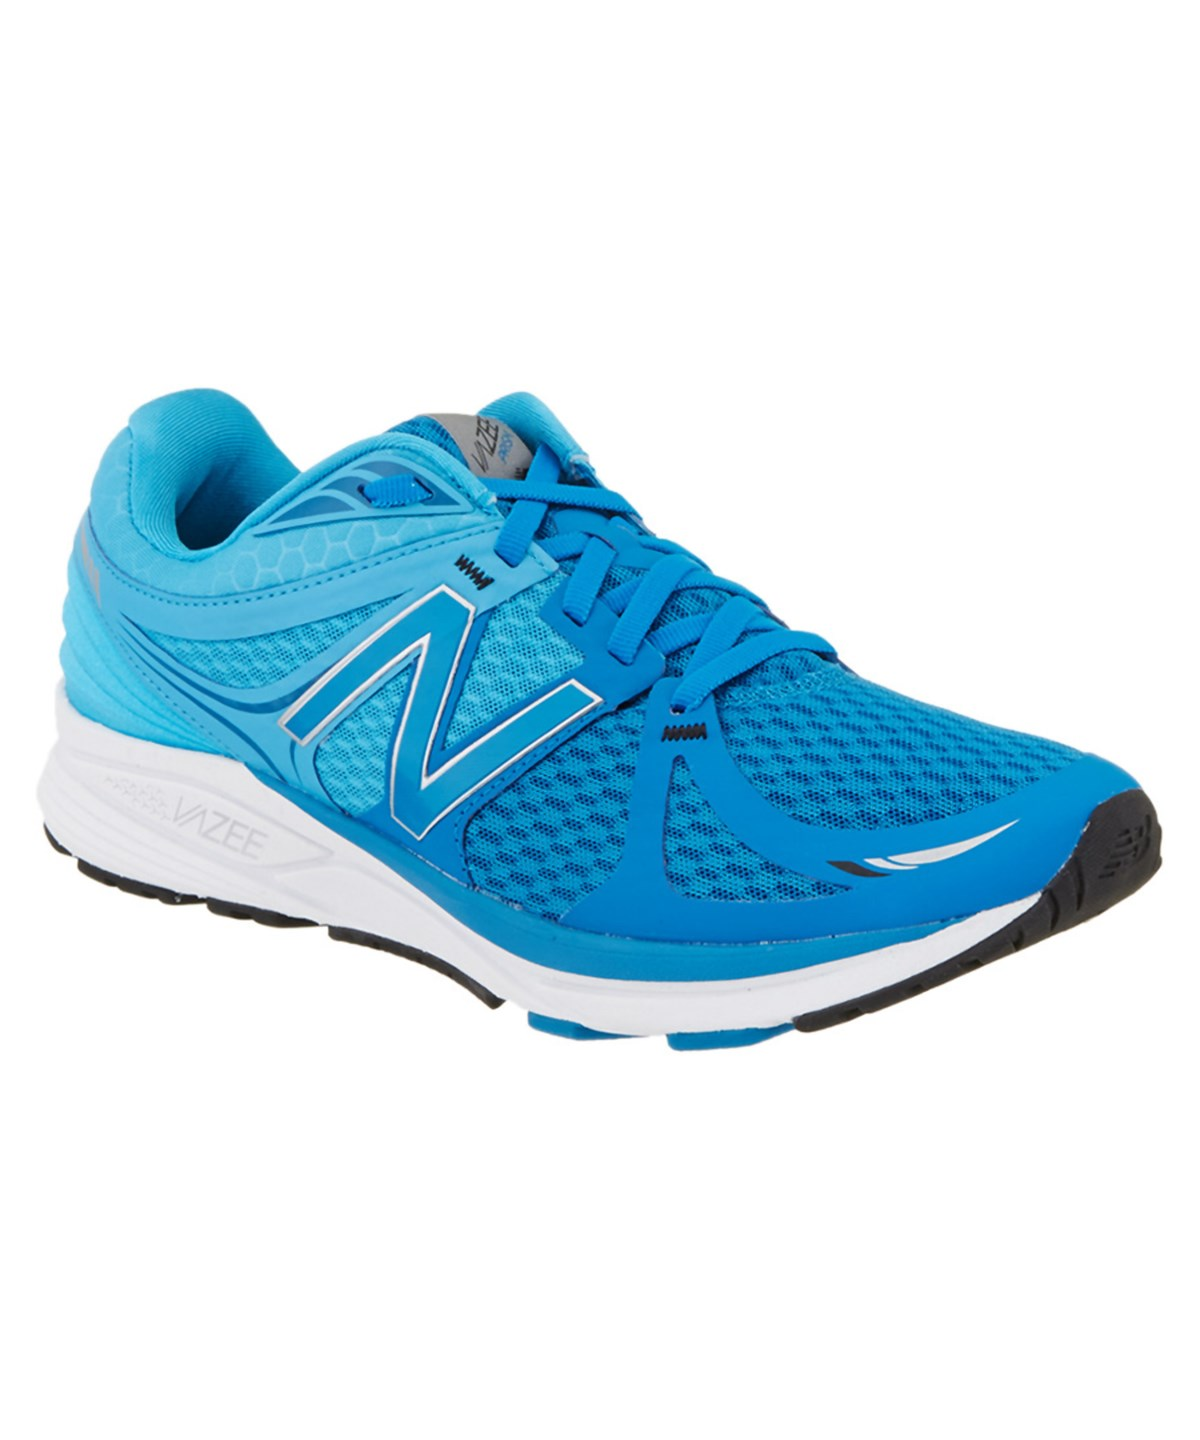 New Balance Men's Vazee Prism Running Shoe In Blue